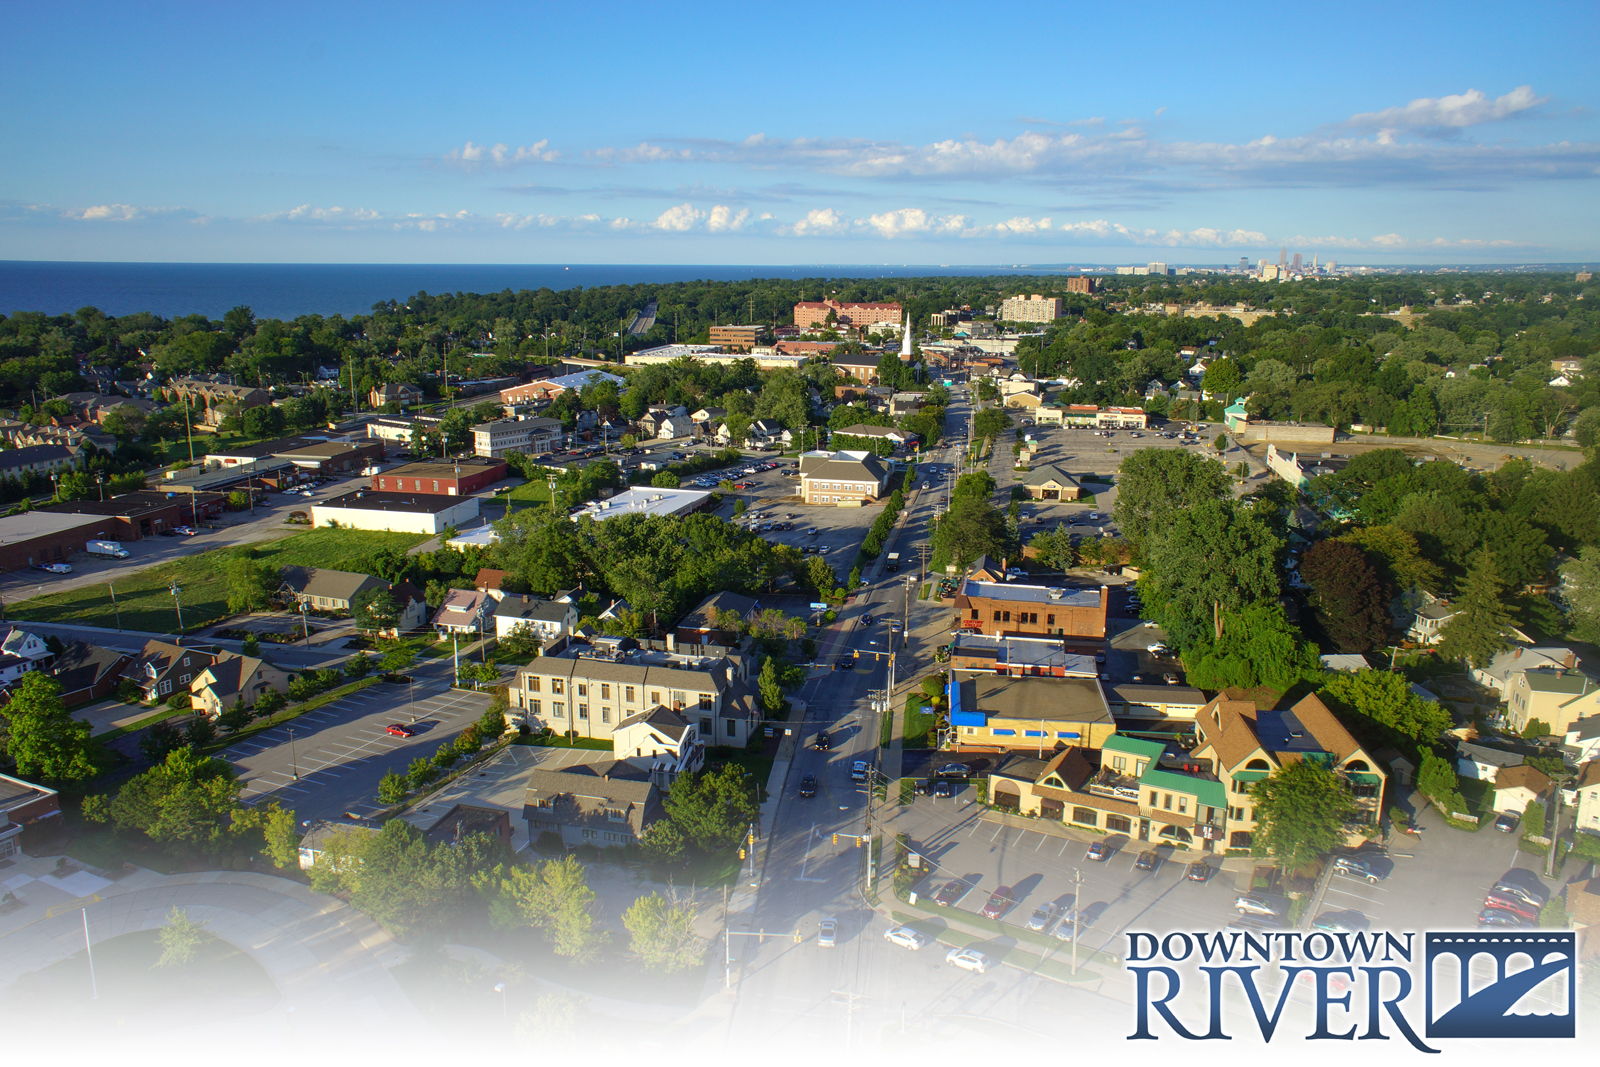 Take an Aerial Tour of Downtown River -